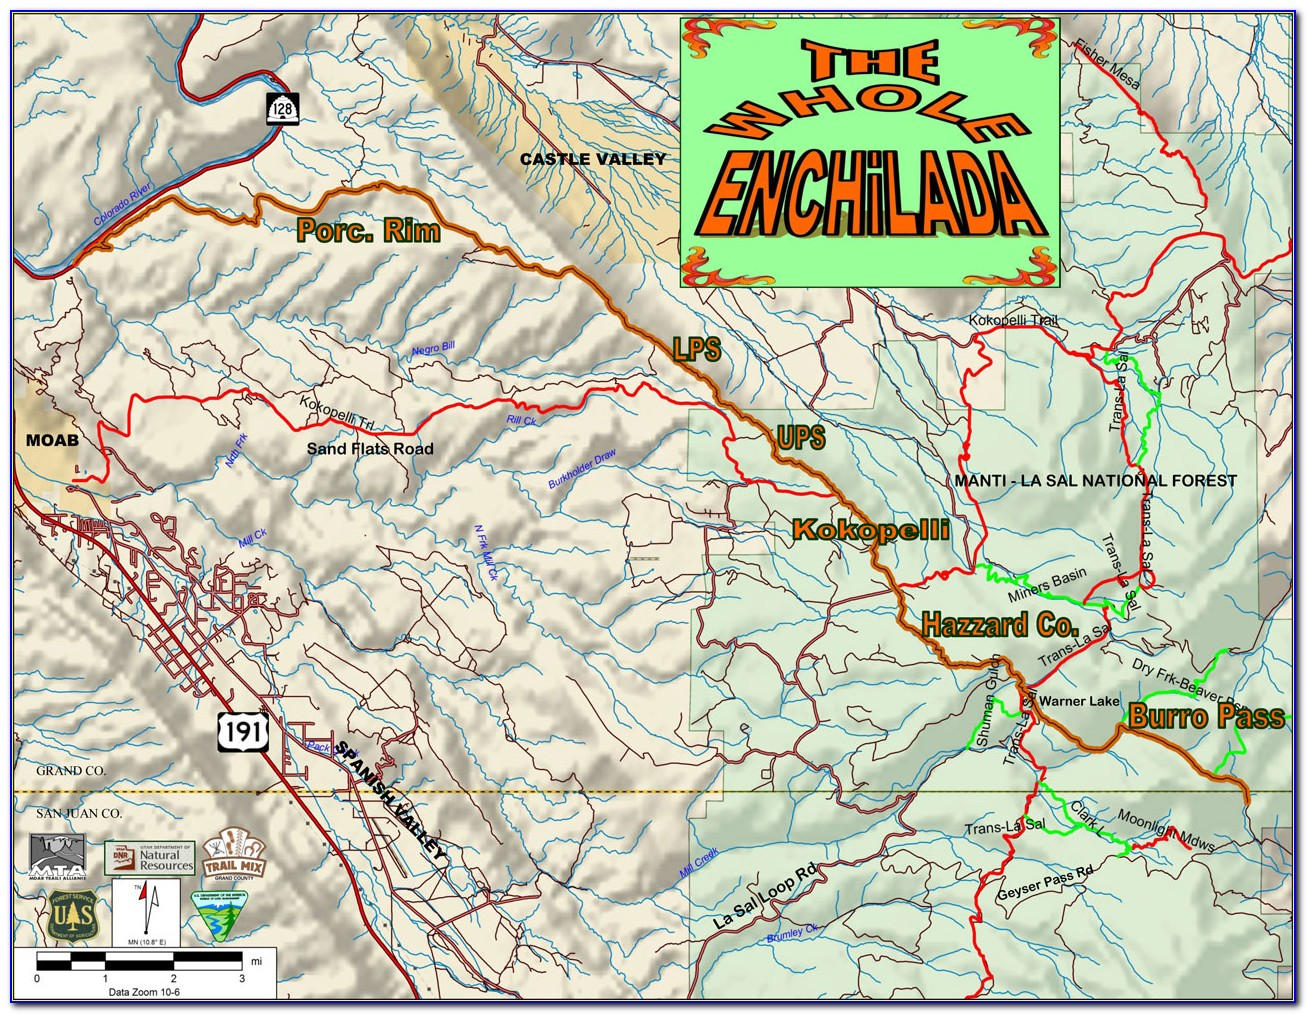 Moab Utah 4×4 Trail Maps